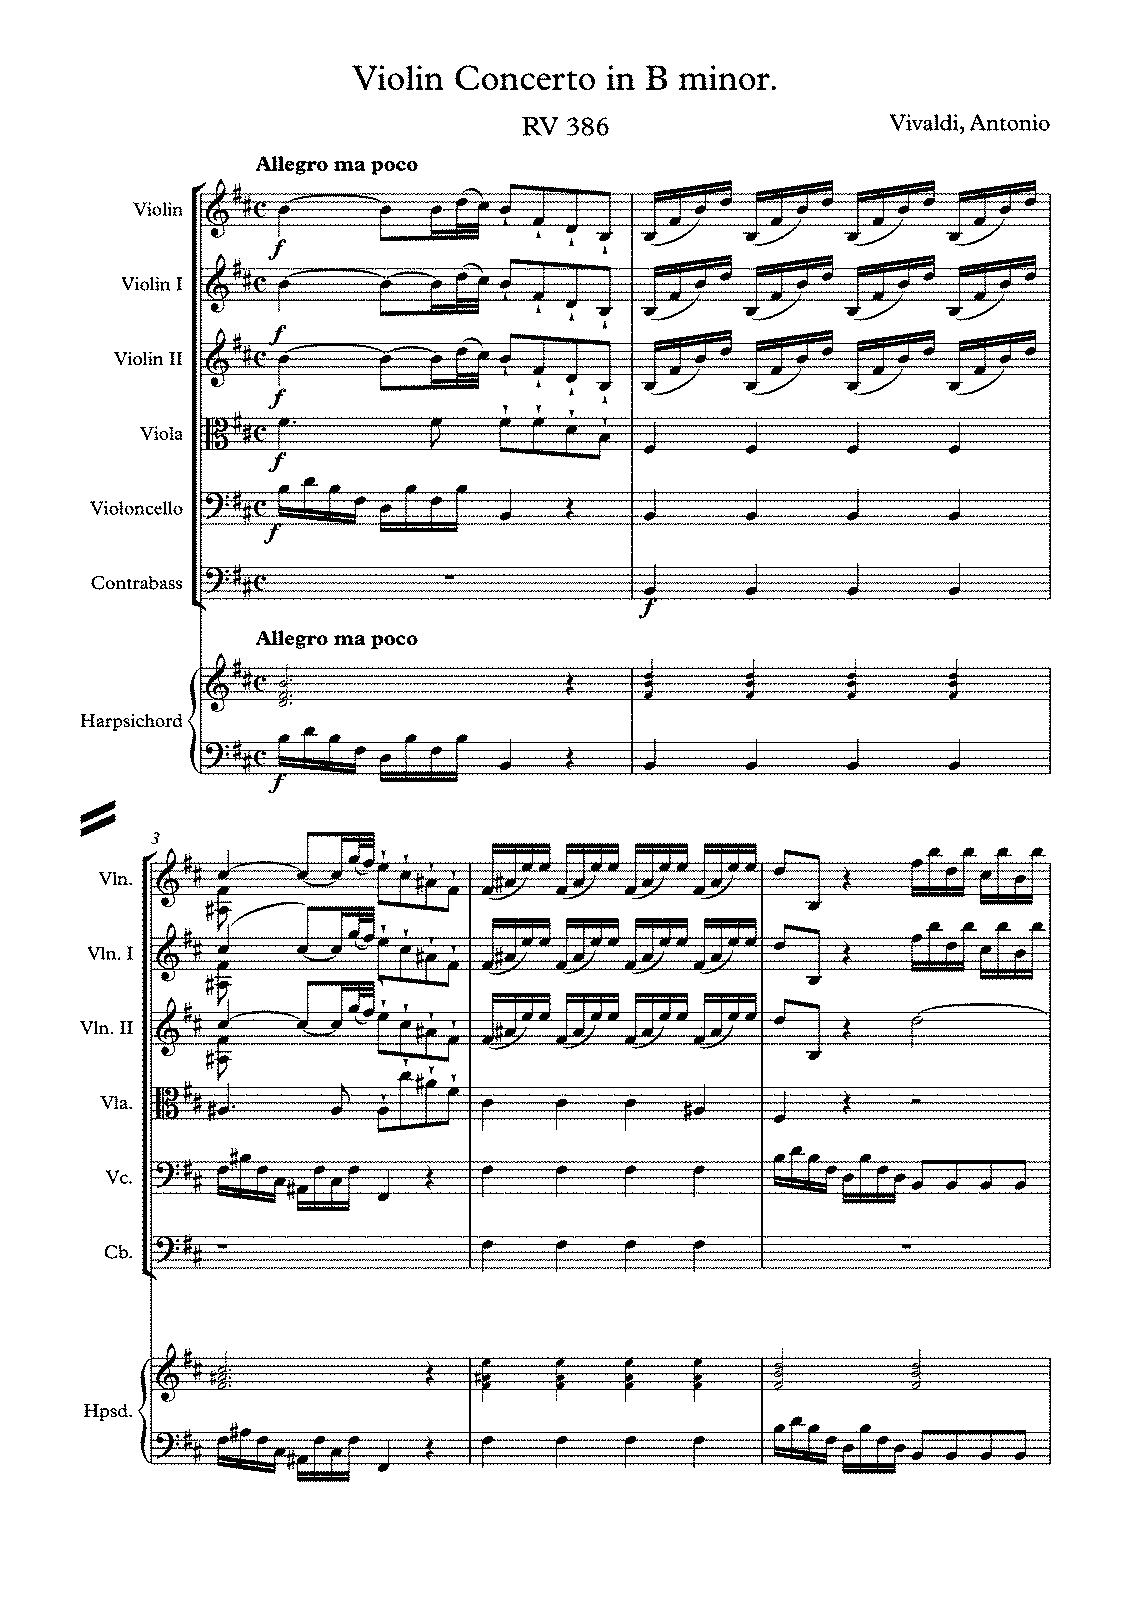 PMLP548420-Antonio Vivaldi - Violin Concerto in B minor, RV 386.pdf